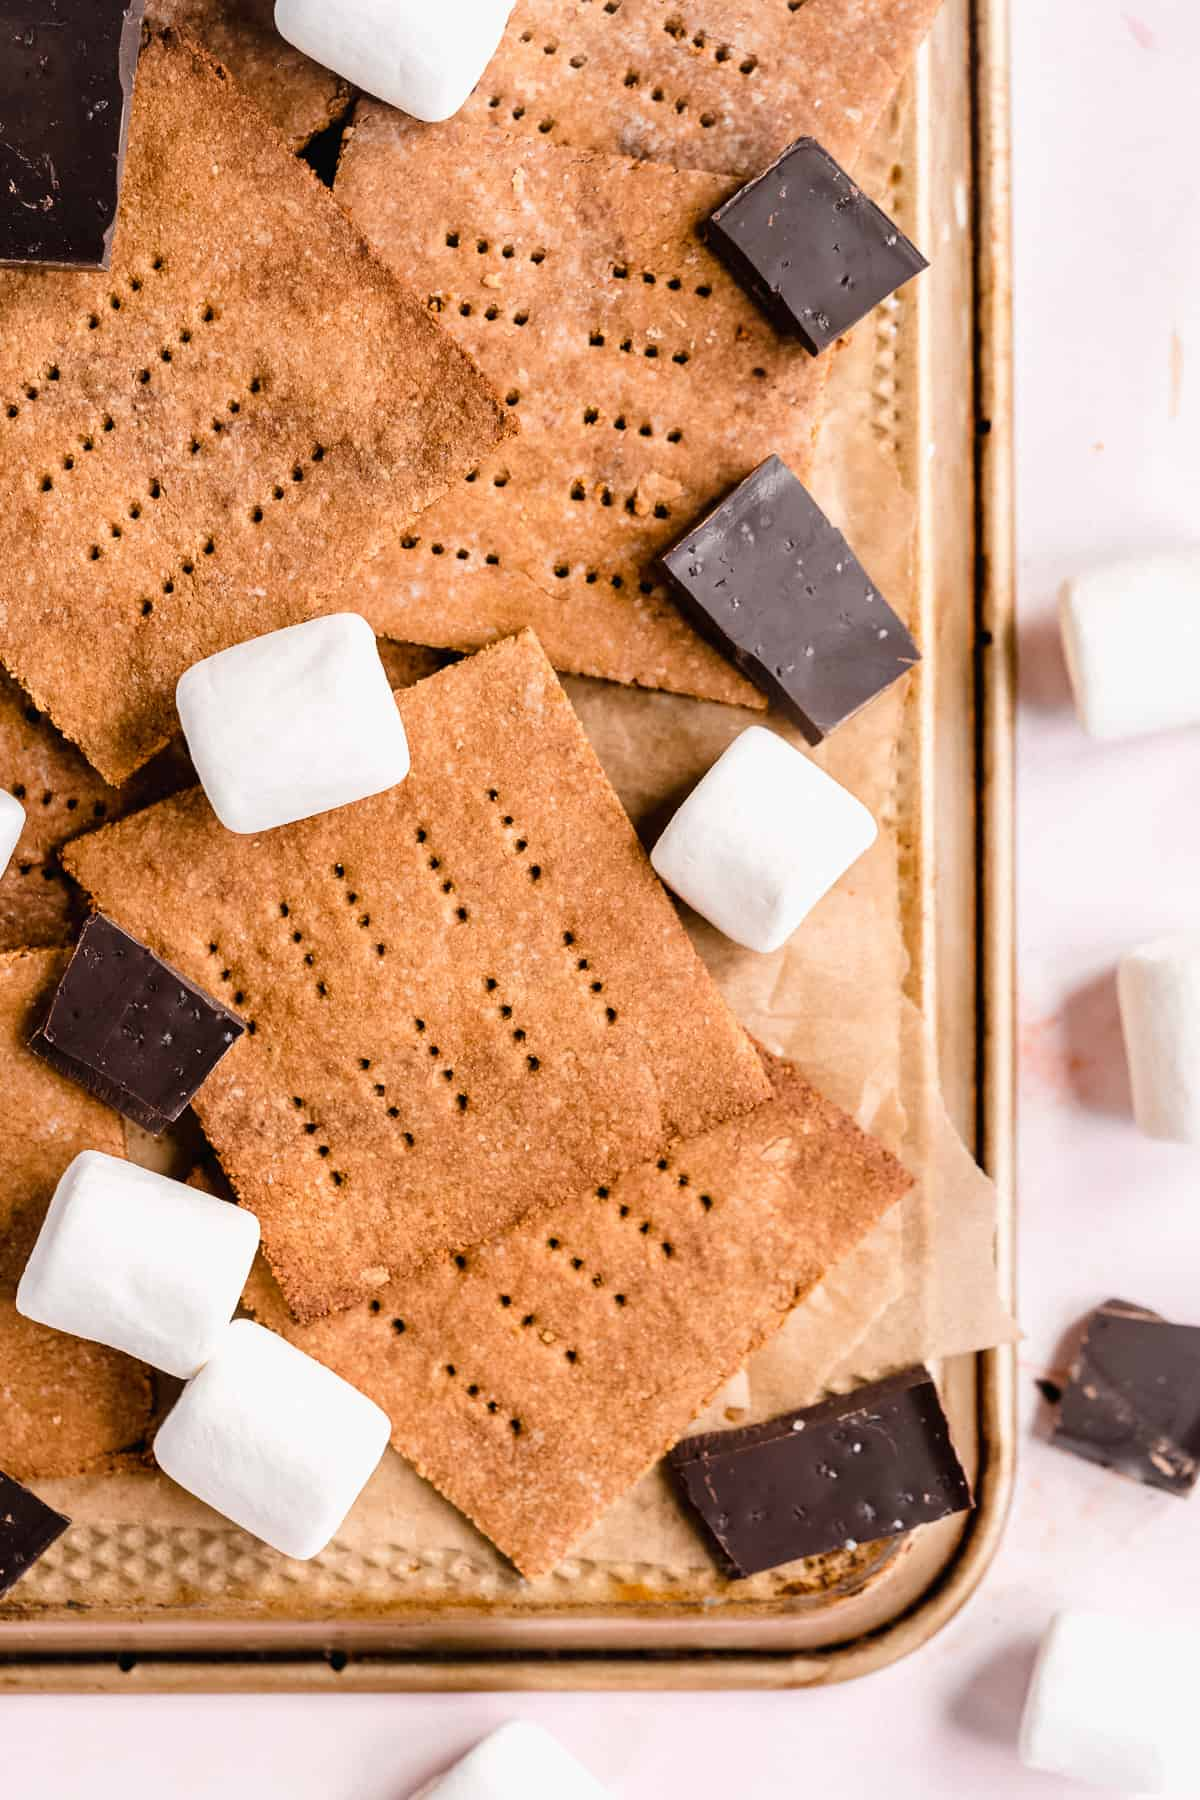 Overhead photo of the completed Homemade Graham Crackers arranged on parchment paper on a baking tray.  Chocolate pieces and marshmallow are scattered around.